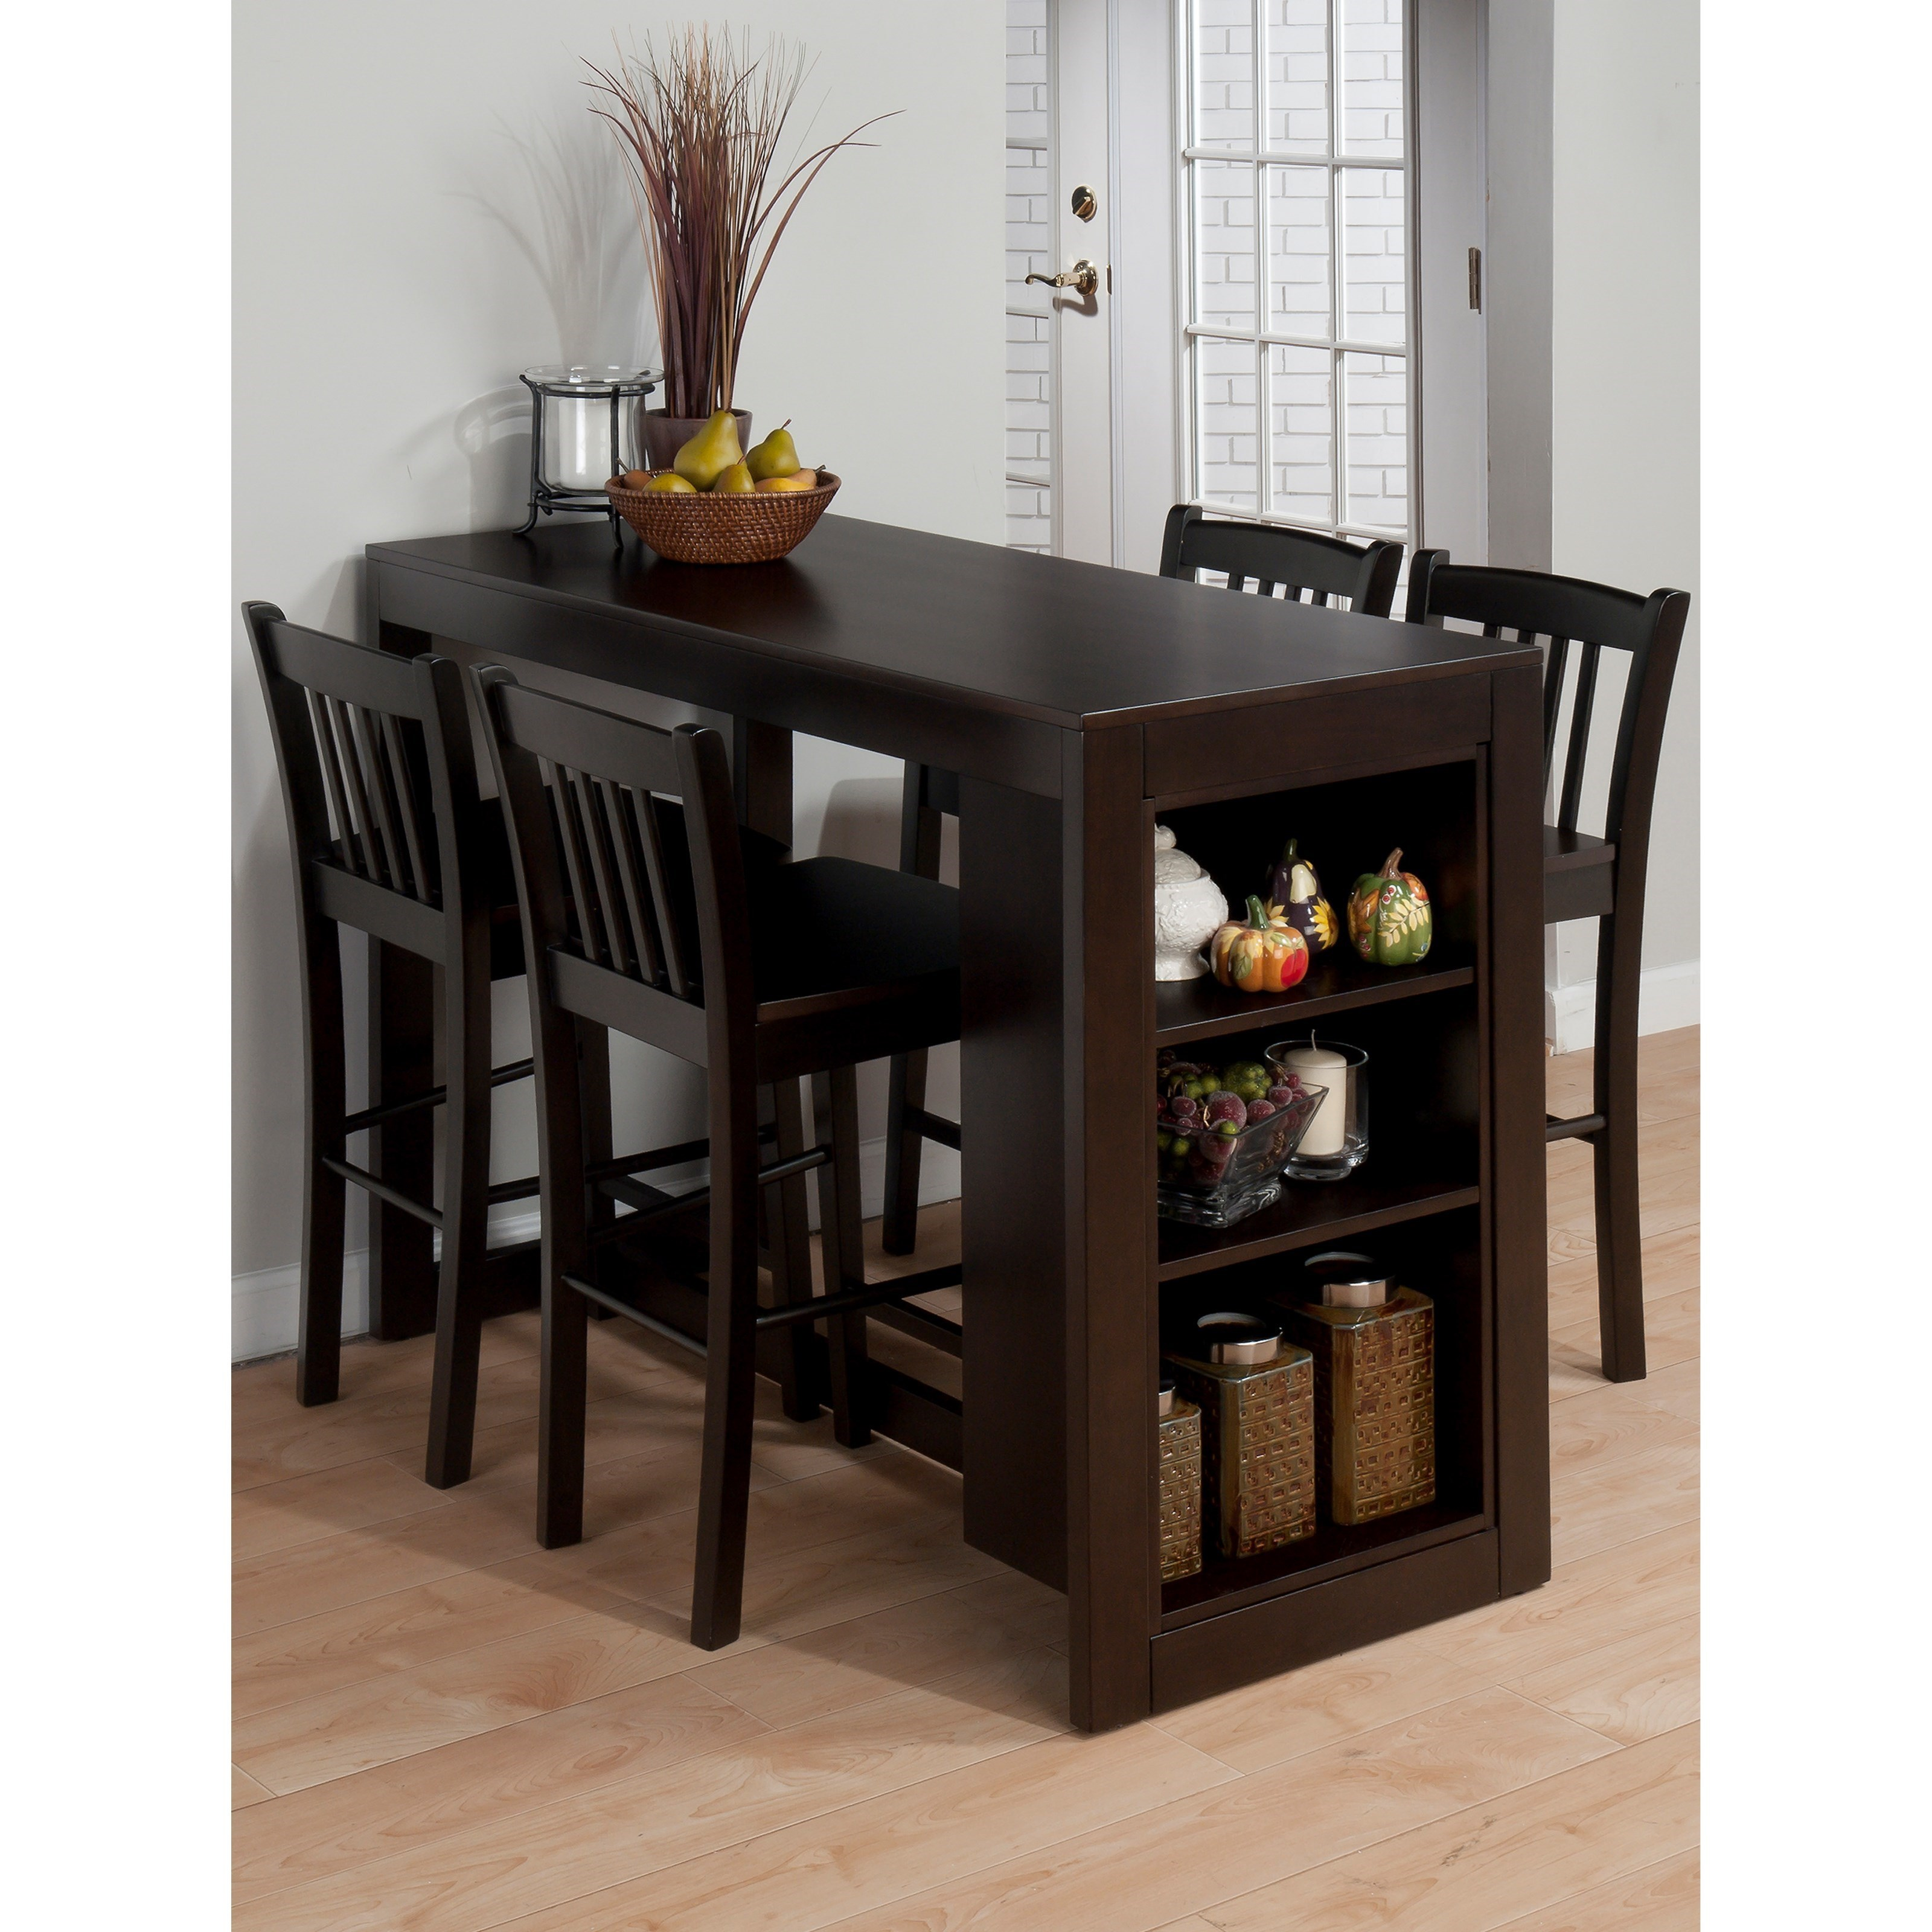 Jofran Tribeca Counter Height Table with 4 Chairs - Jofran